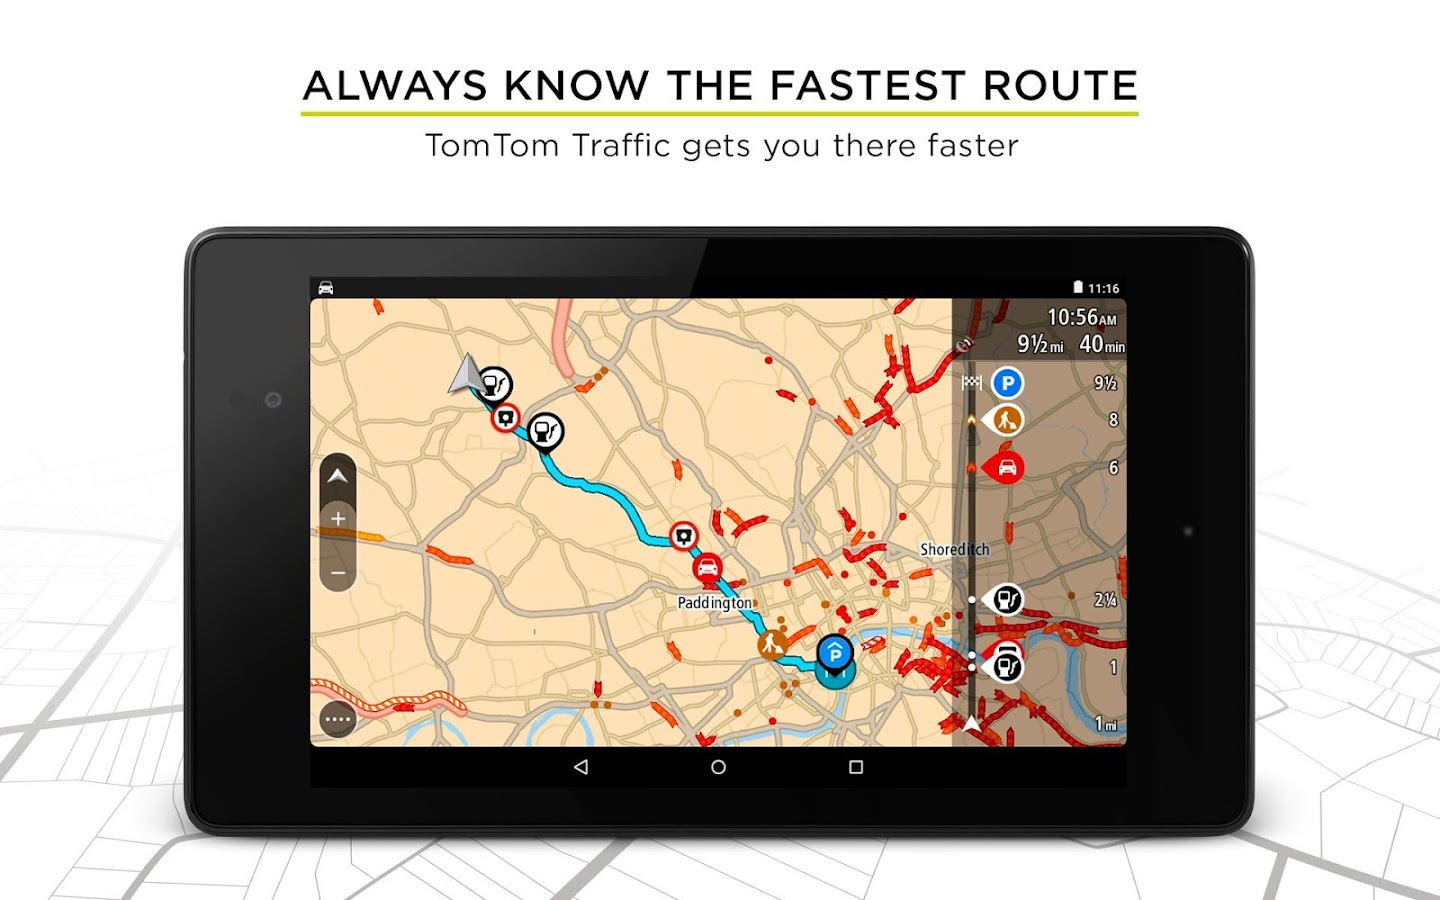 tomtom gps navigation traffic android alkalmaz sok a. Black Bedroom Furniture Sets. Home Design Ideas